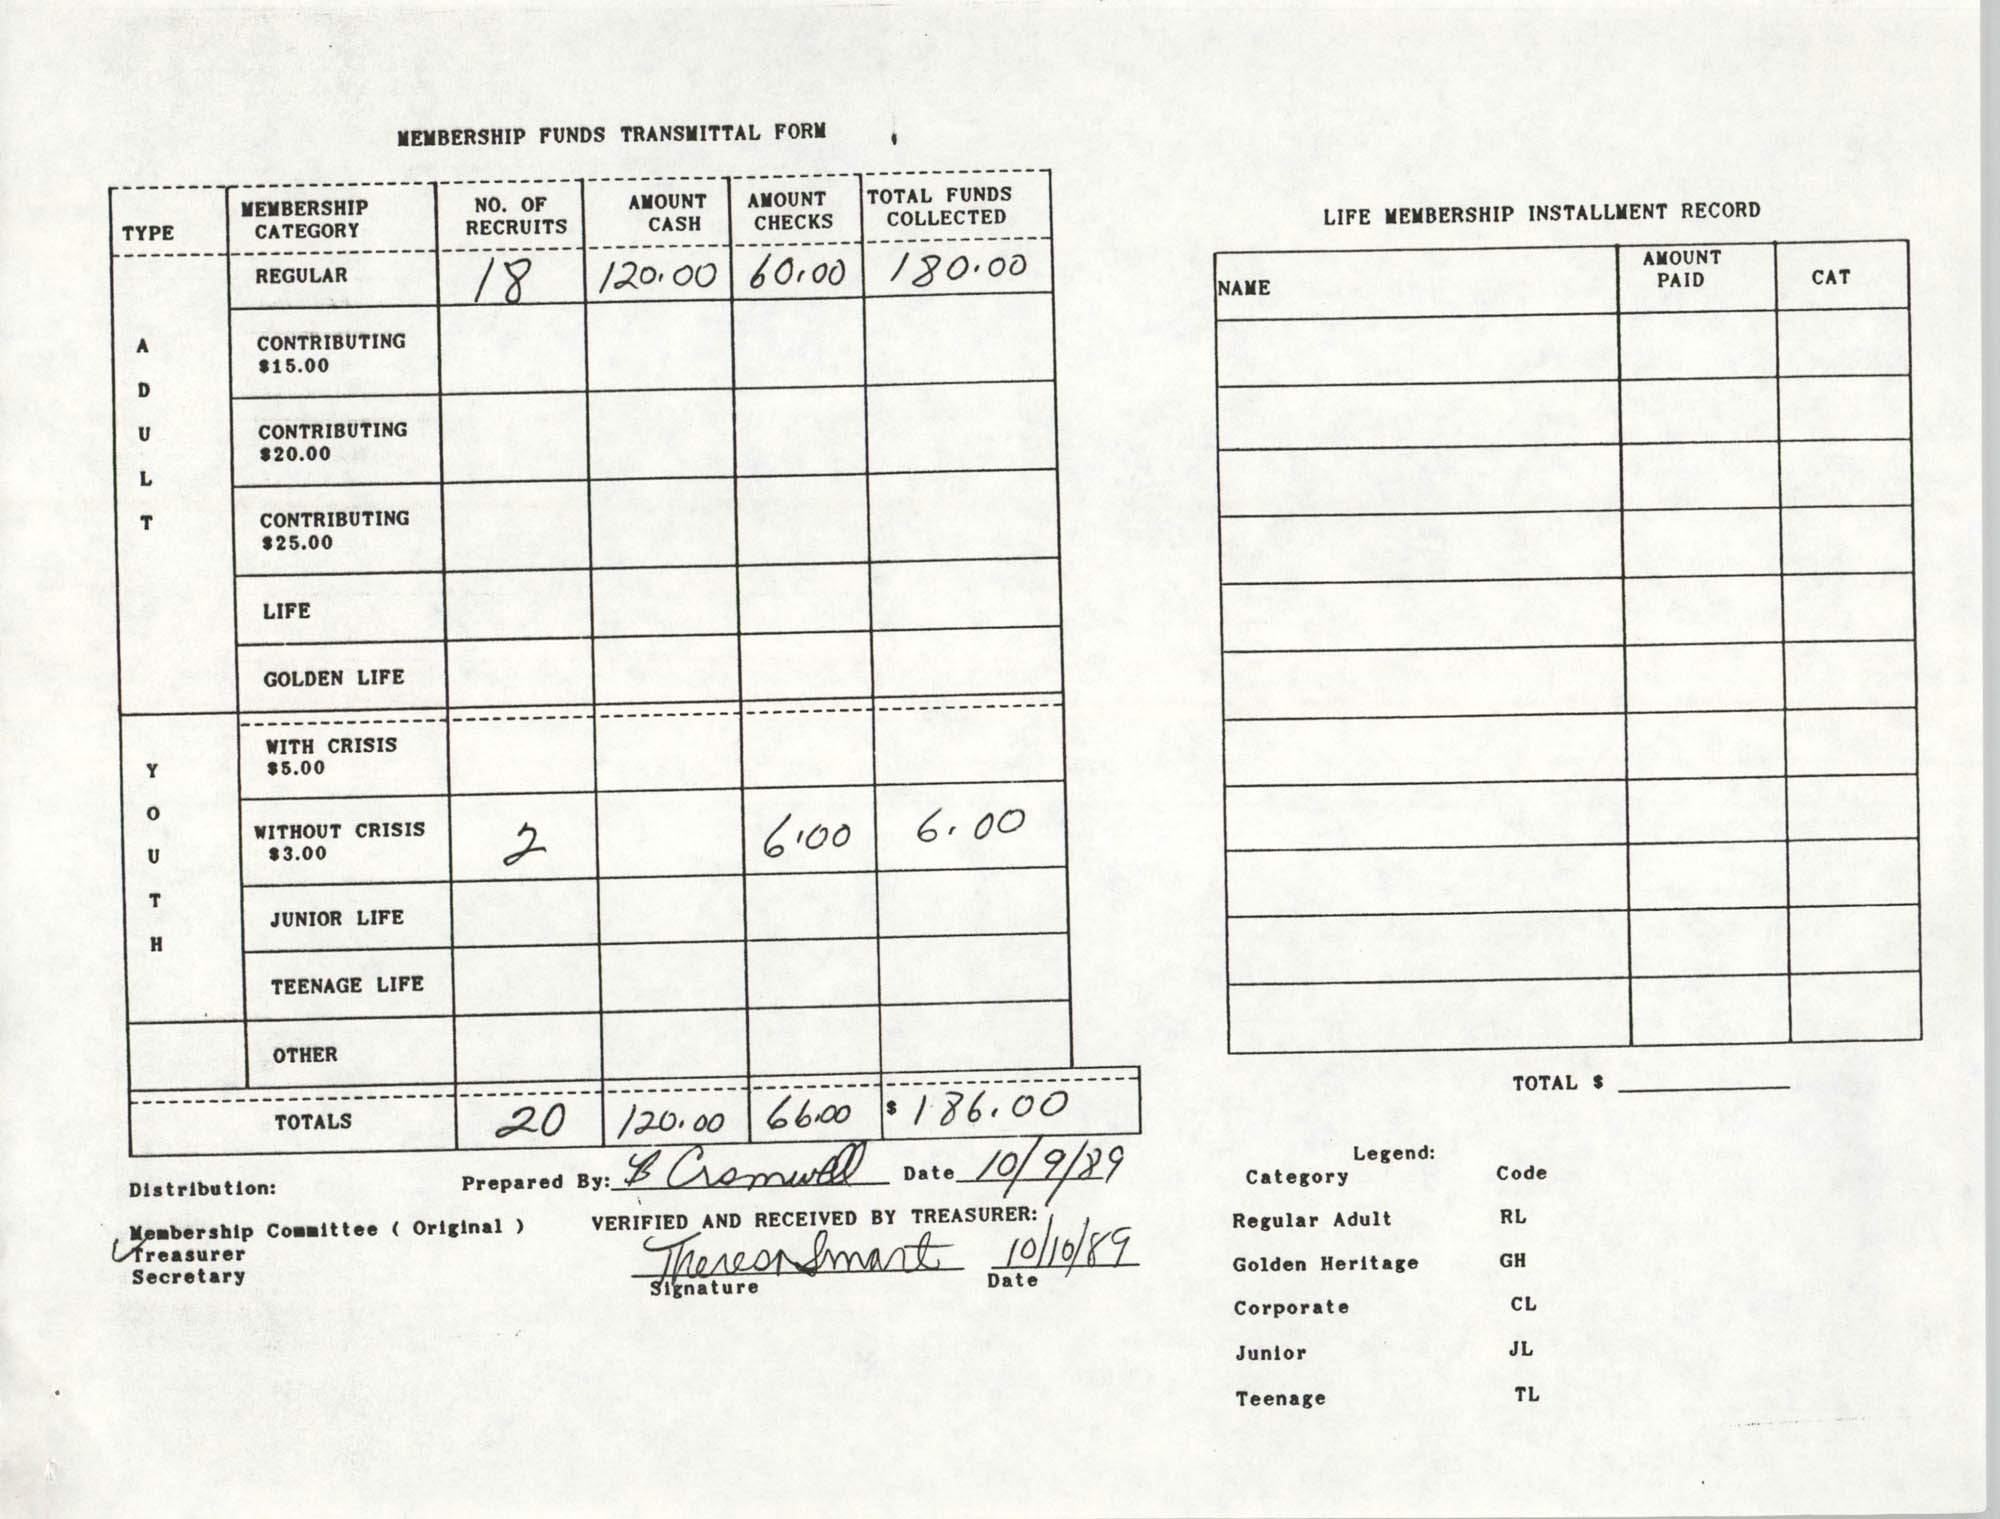 Charleston Branch of the NAACP Funds Transmittal Forms, October 1989, Page 2